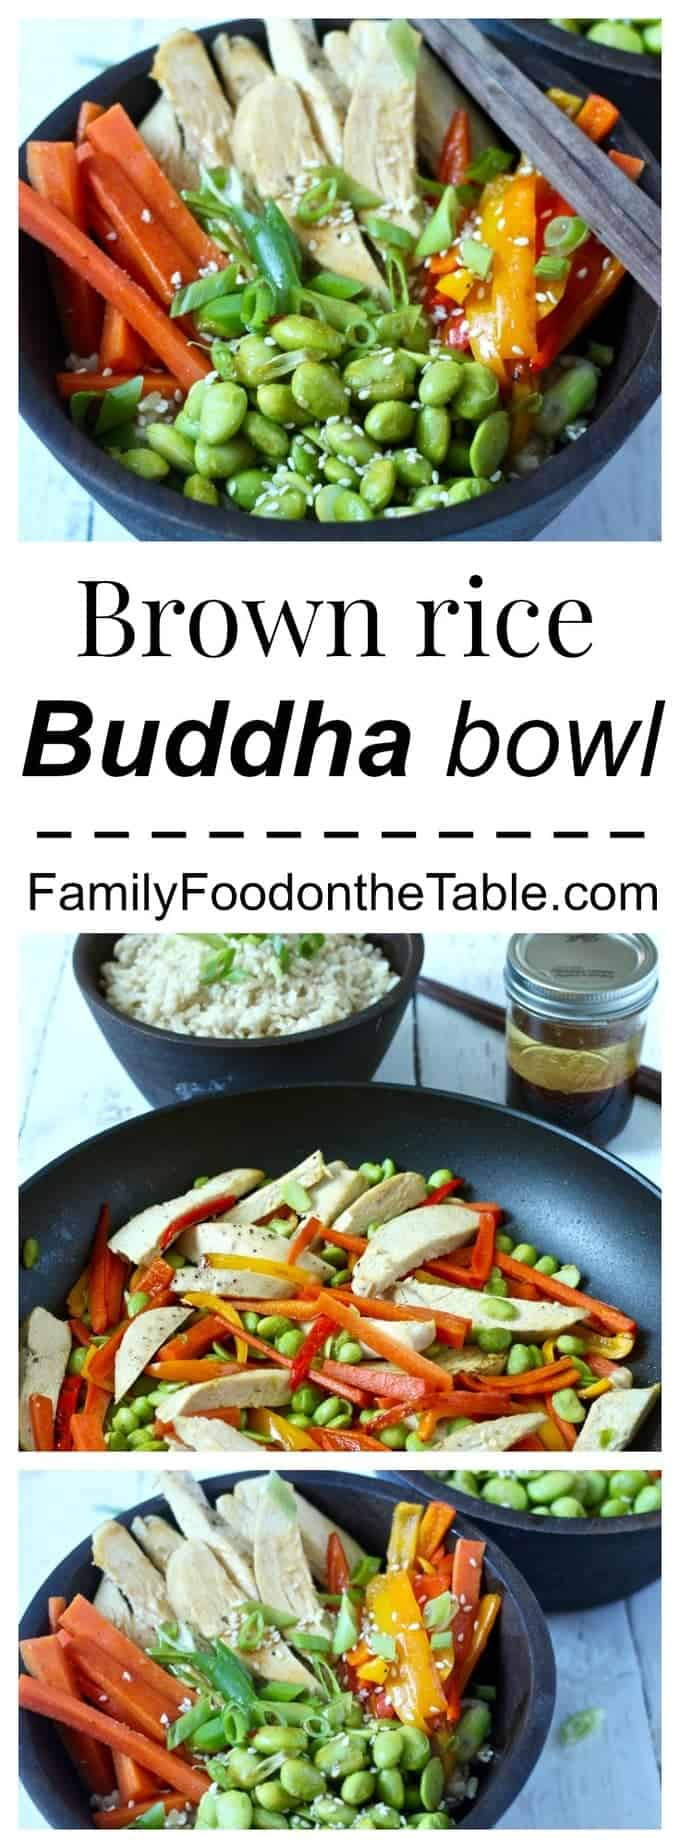 Brown rice Buddha bowl with veggies, chicken and a delicious soy ginger dressing - an easy, healthy dinner!